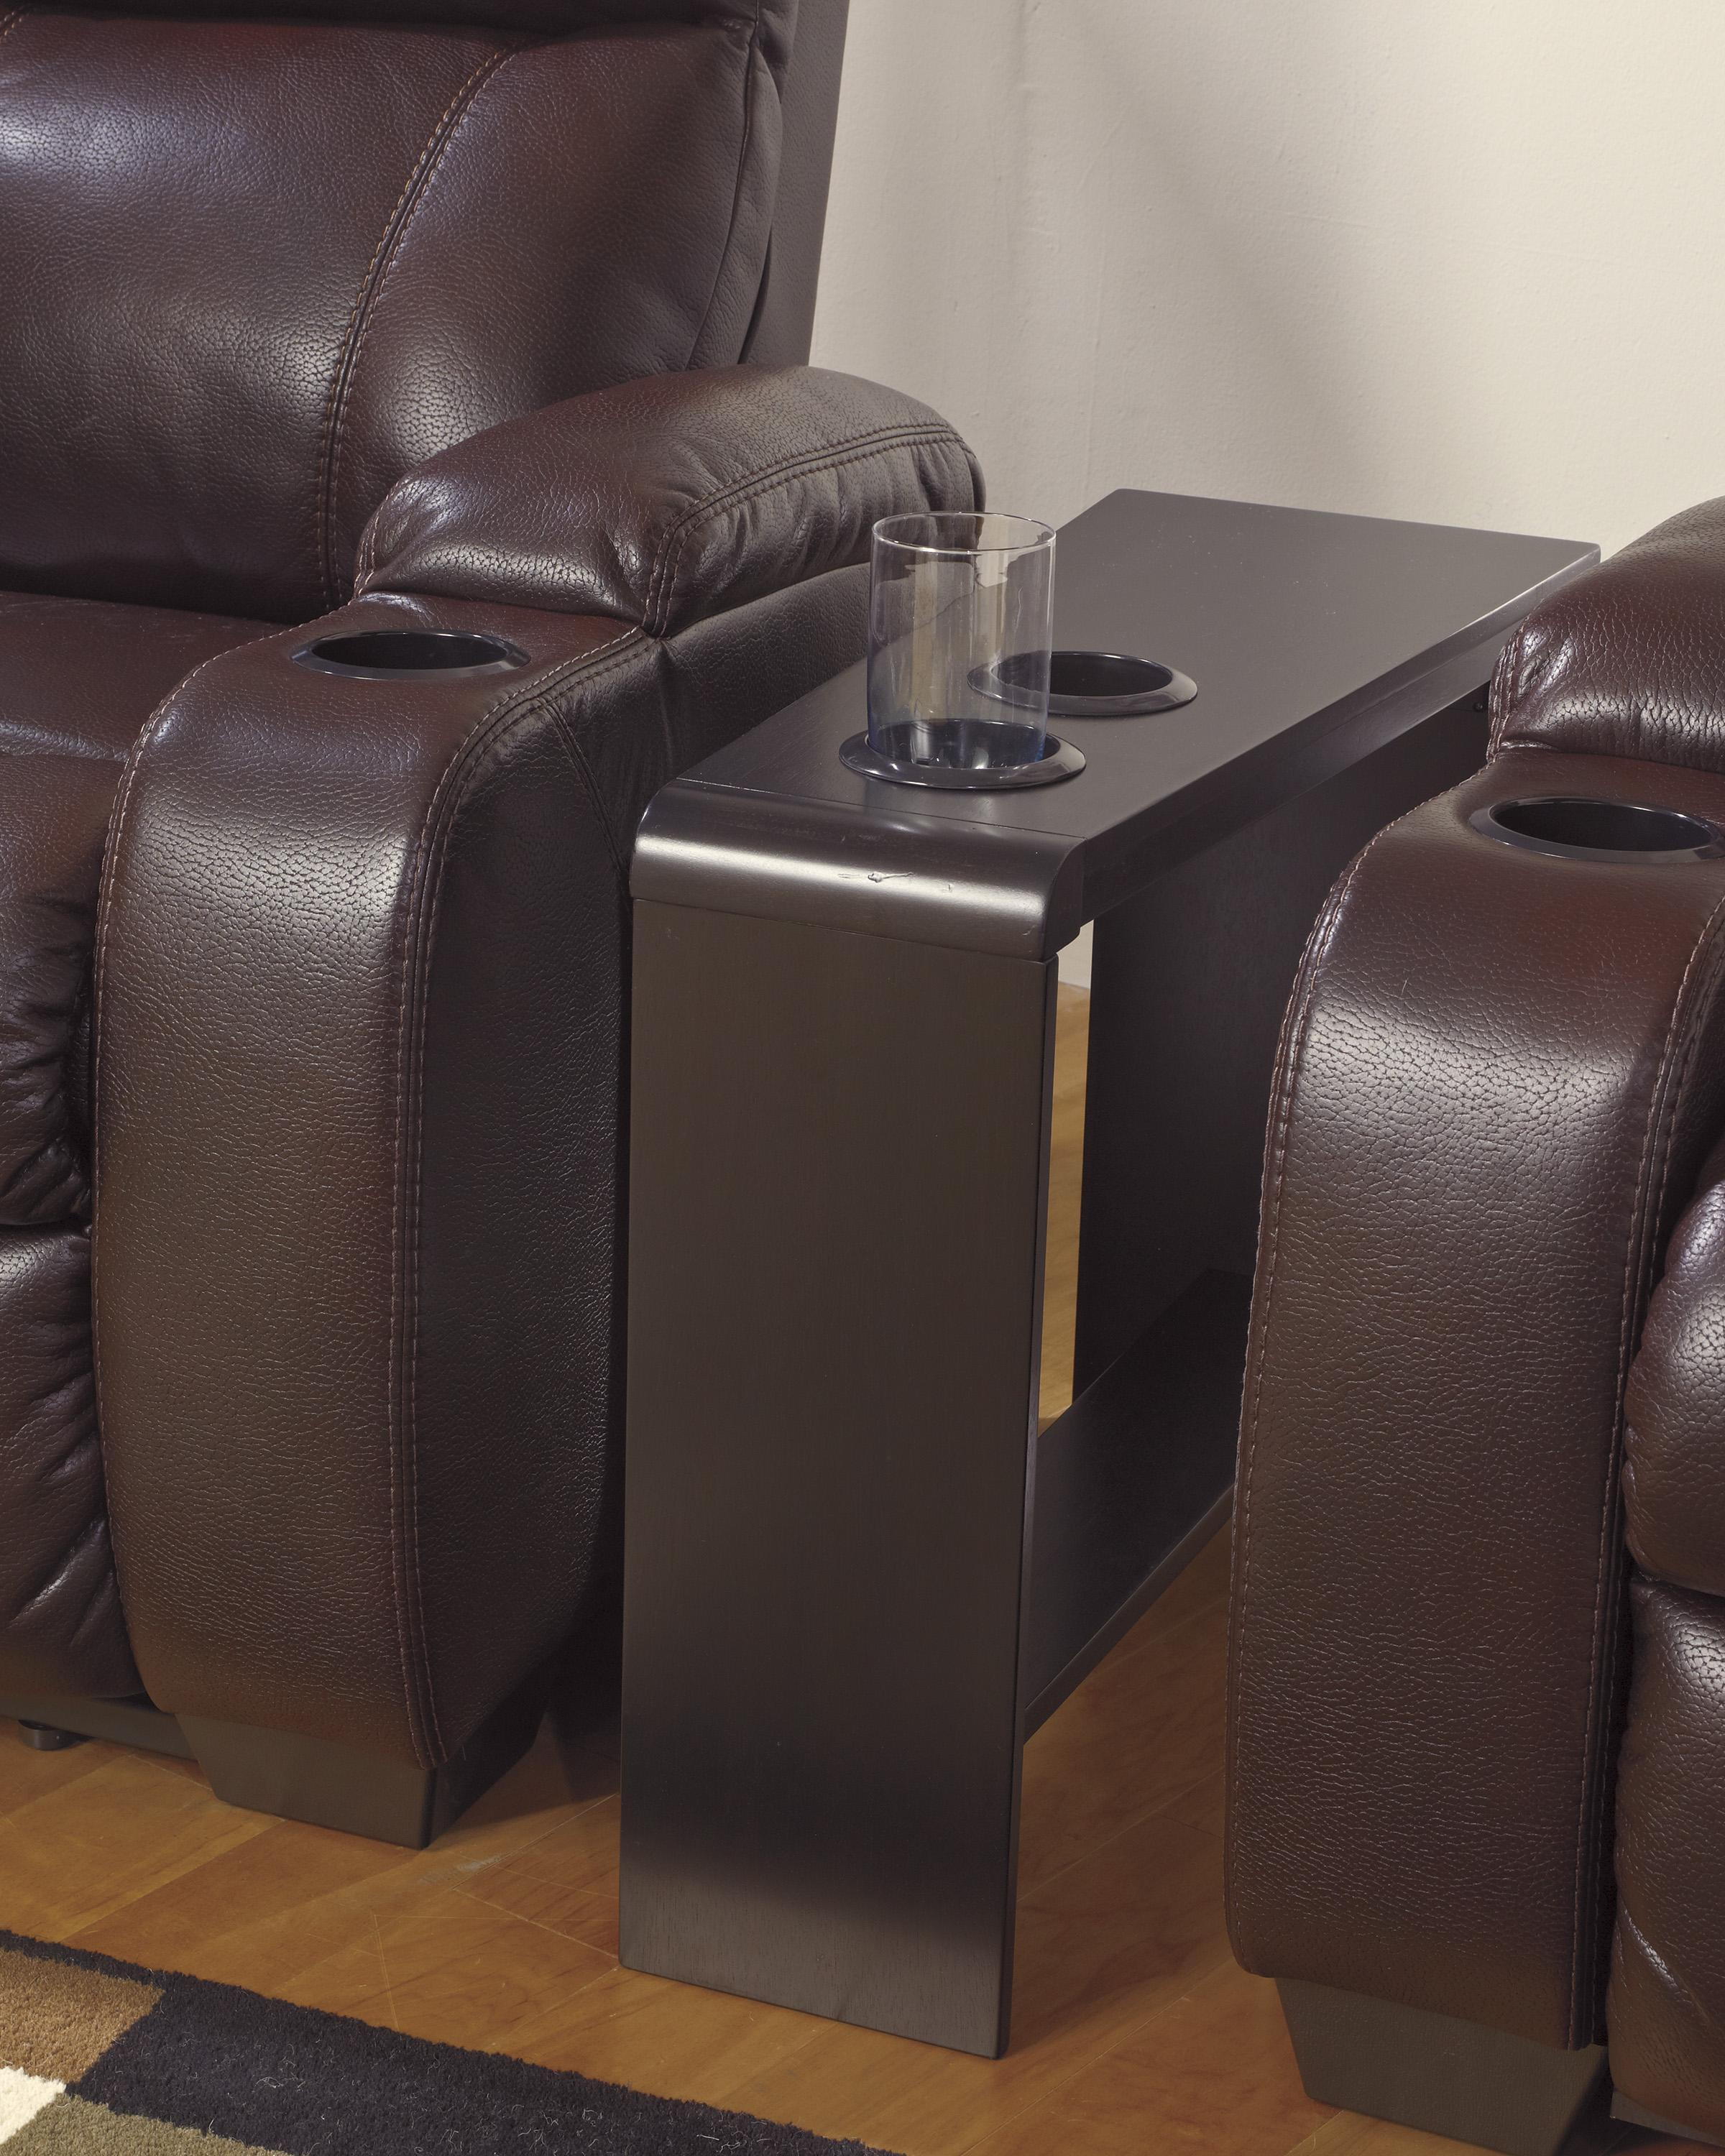 Chair Side End Table With 2 Cup Holders, Powerstrip, U0026 USB Charging